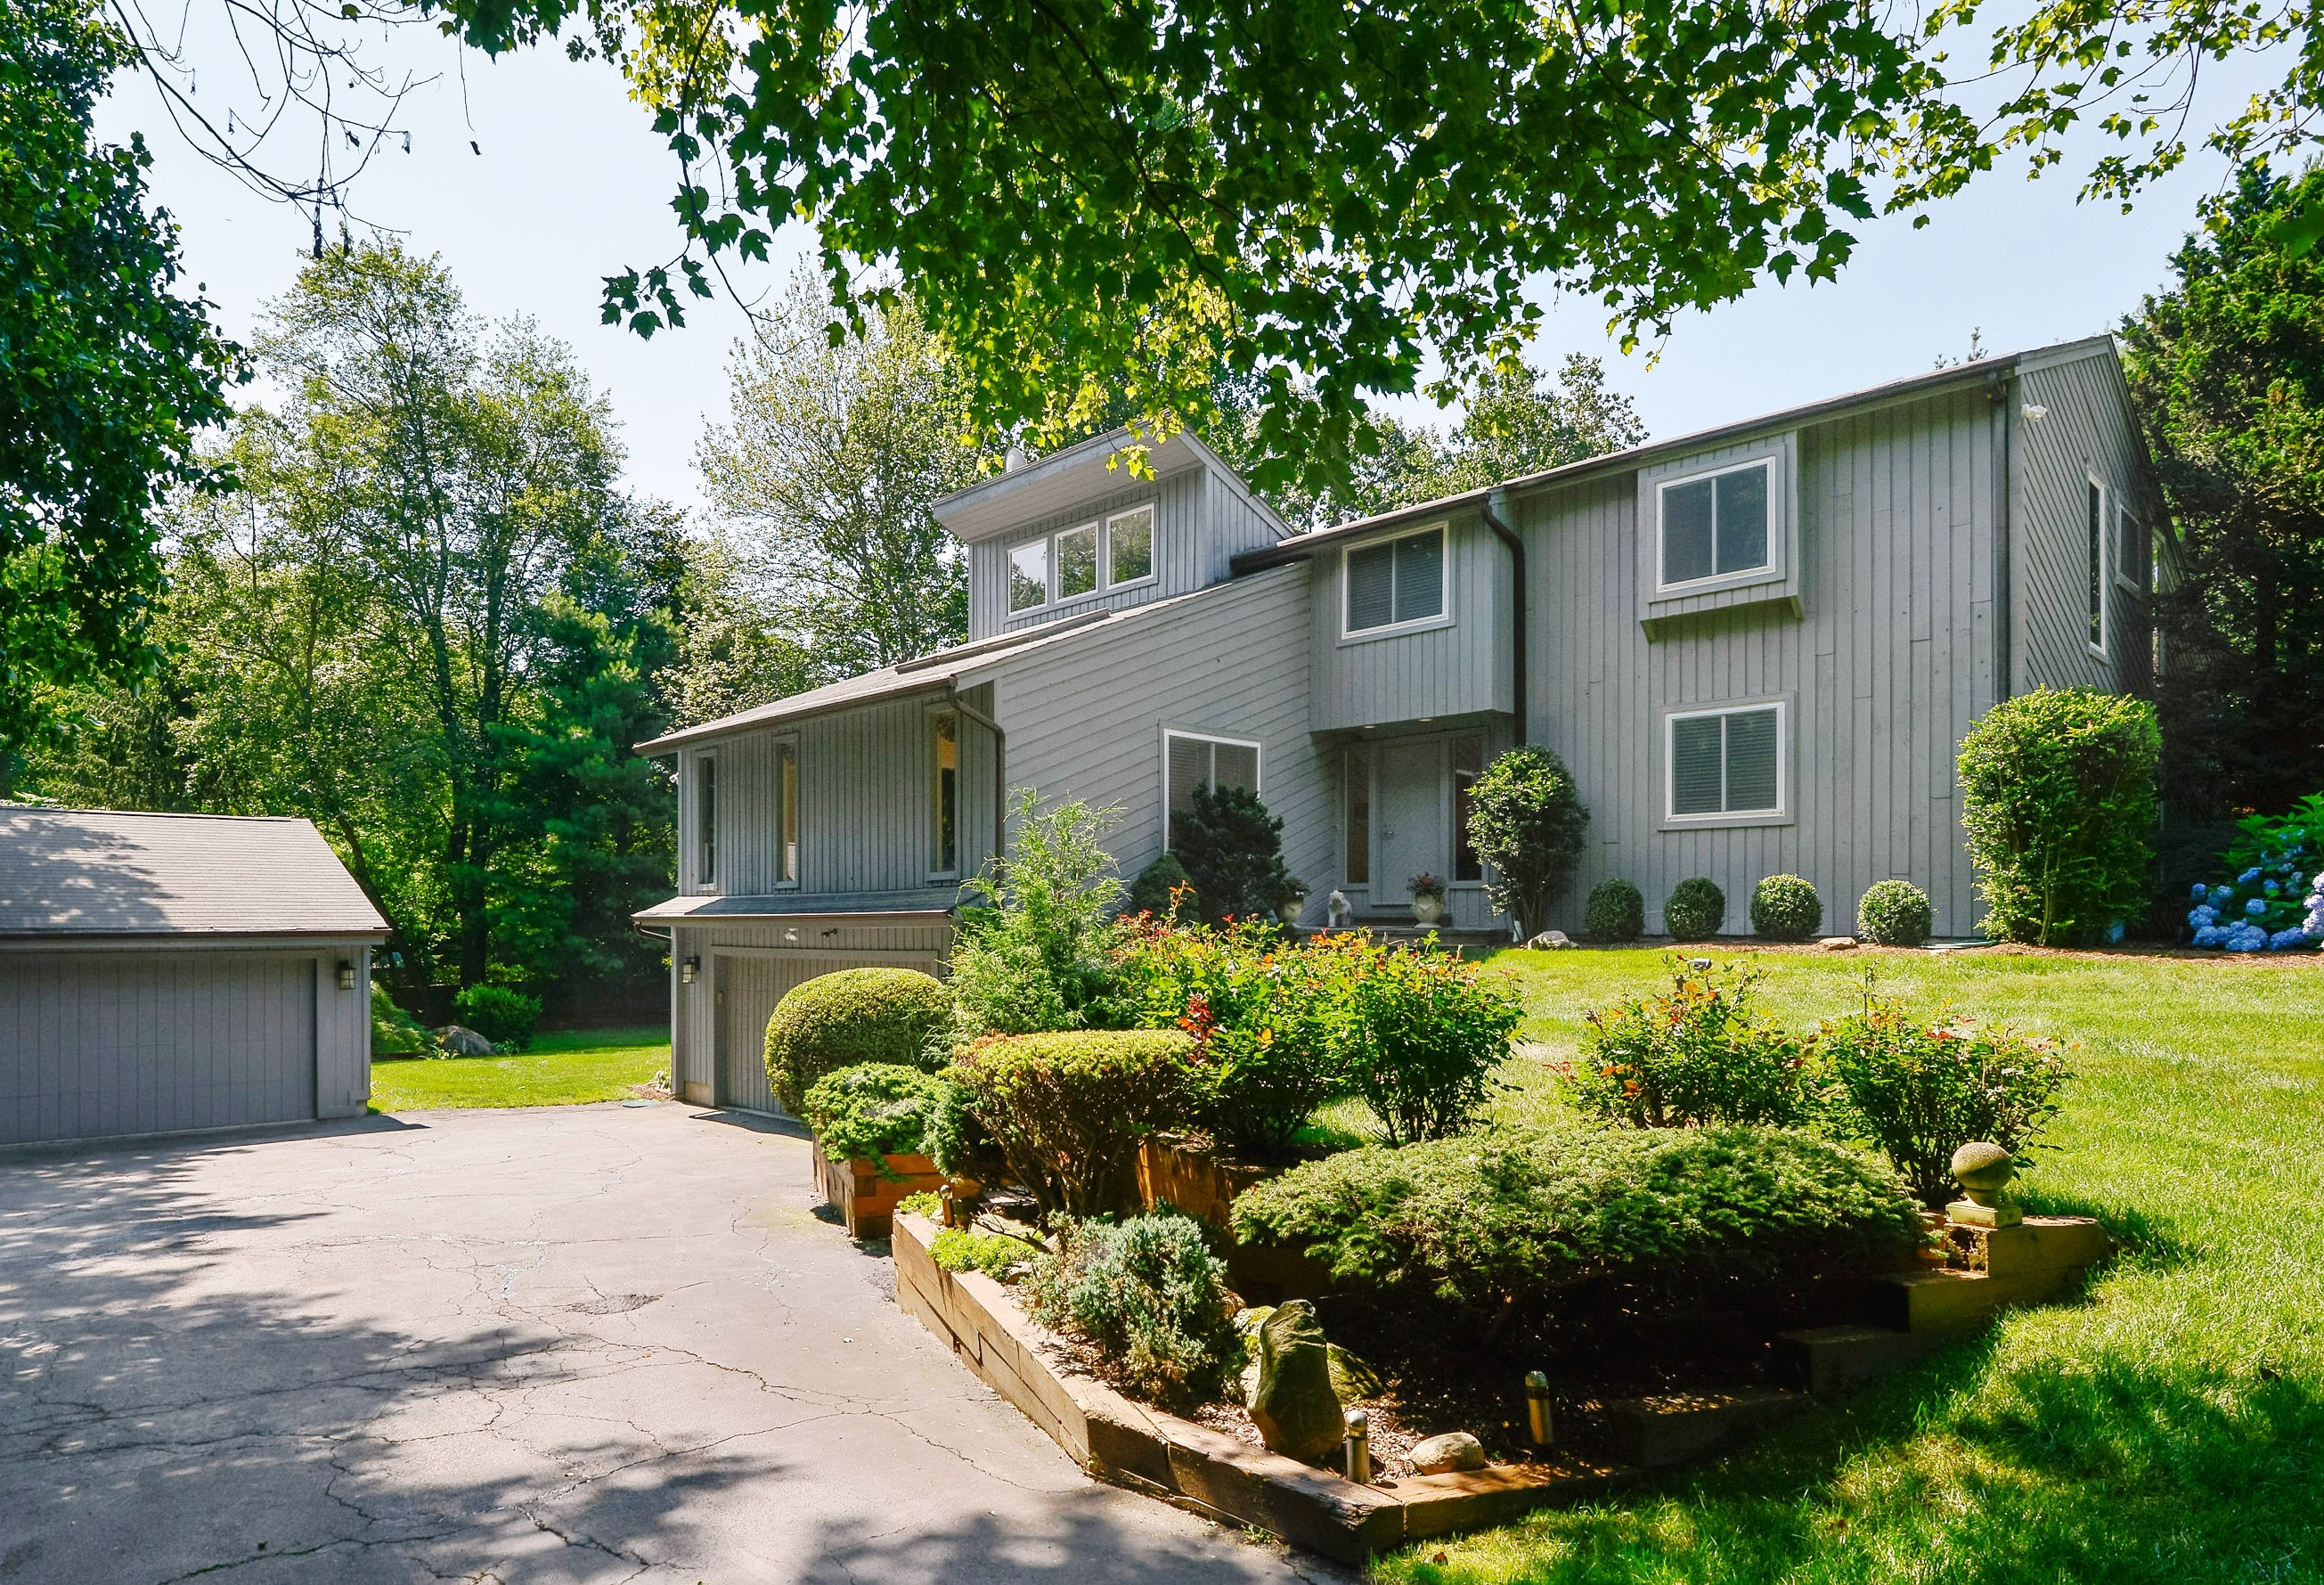 Single Family Home for Sale at Sun-Filled Contemporary 309 Webbs Hill Road Stamford, Connecticut 06903 United States